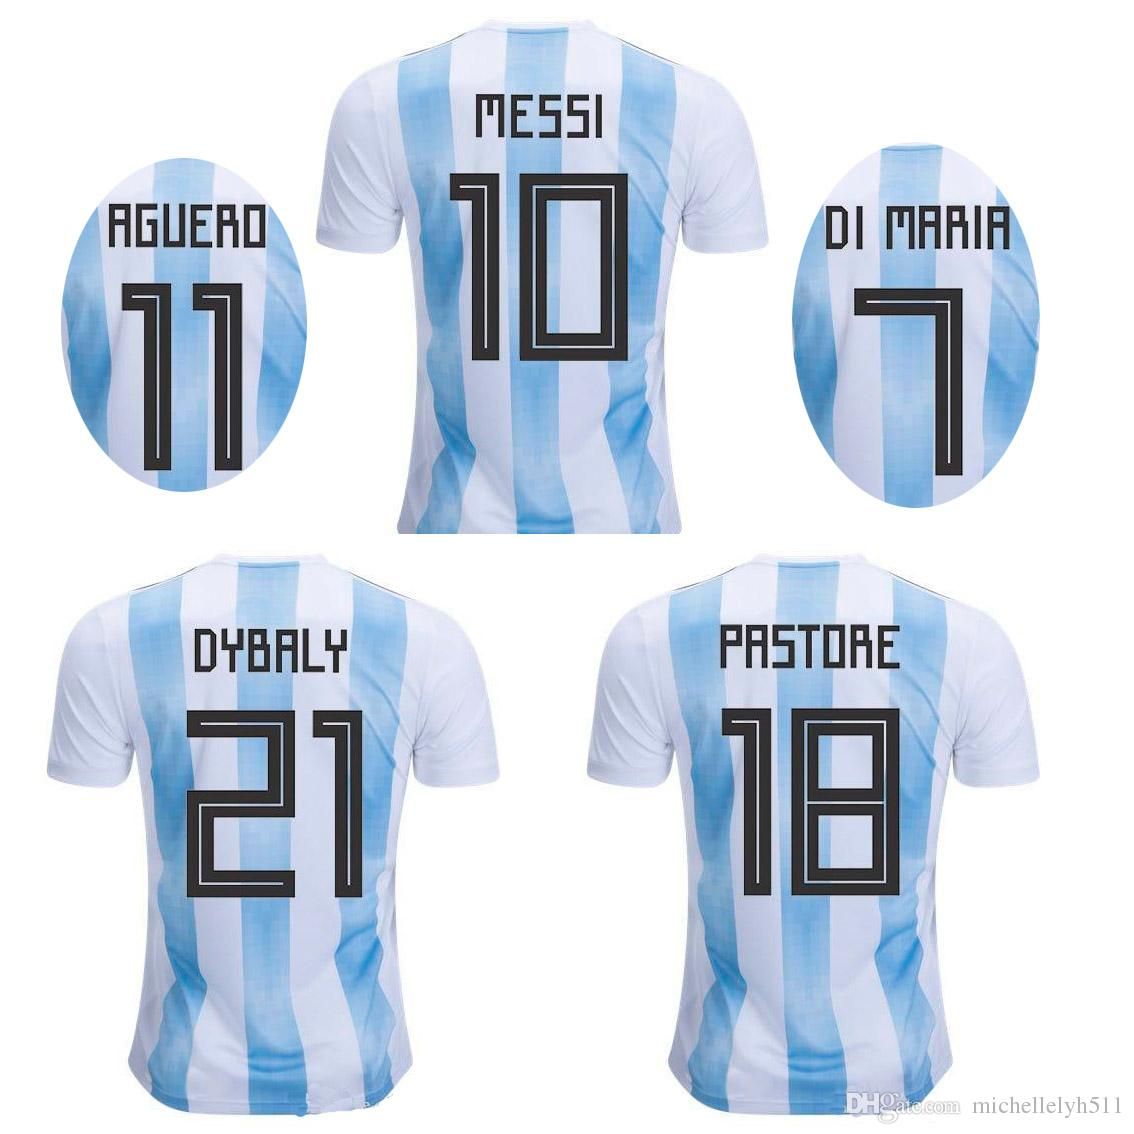 a6fdf8fc6c5 2019 Argentina Home Soccer Jerseys MESSI Icardi DYBALA DI MARIA 2018 World  Cup Football Shirts AFA Top Thai Quality Camiseta De Futbot Sportwears From  ...